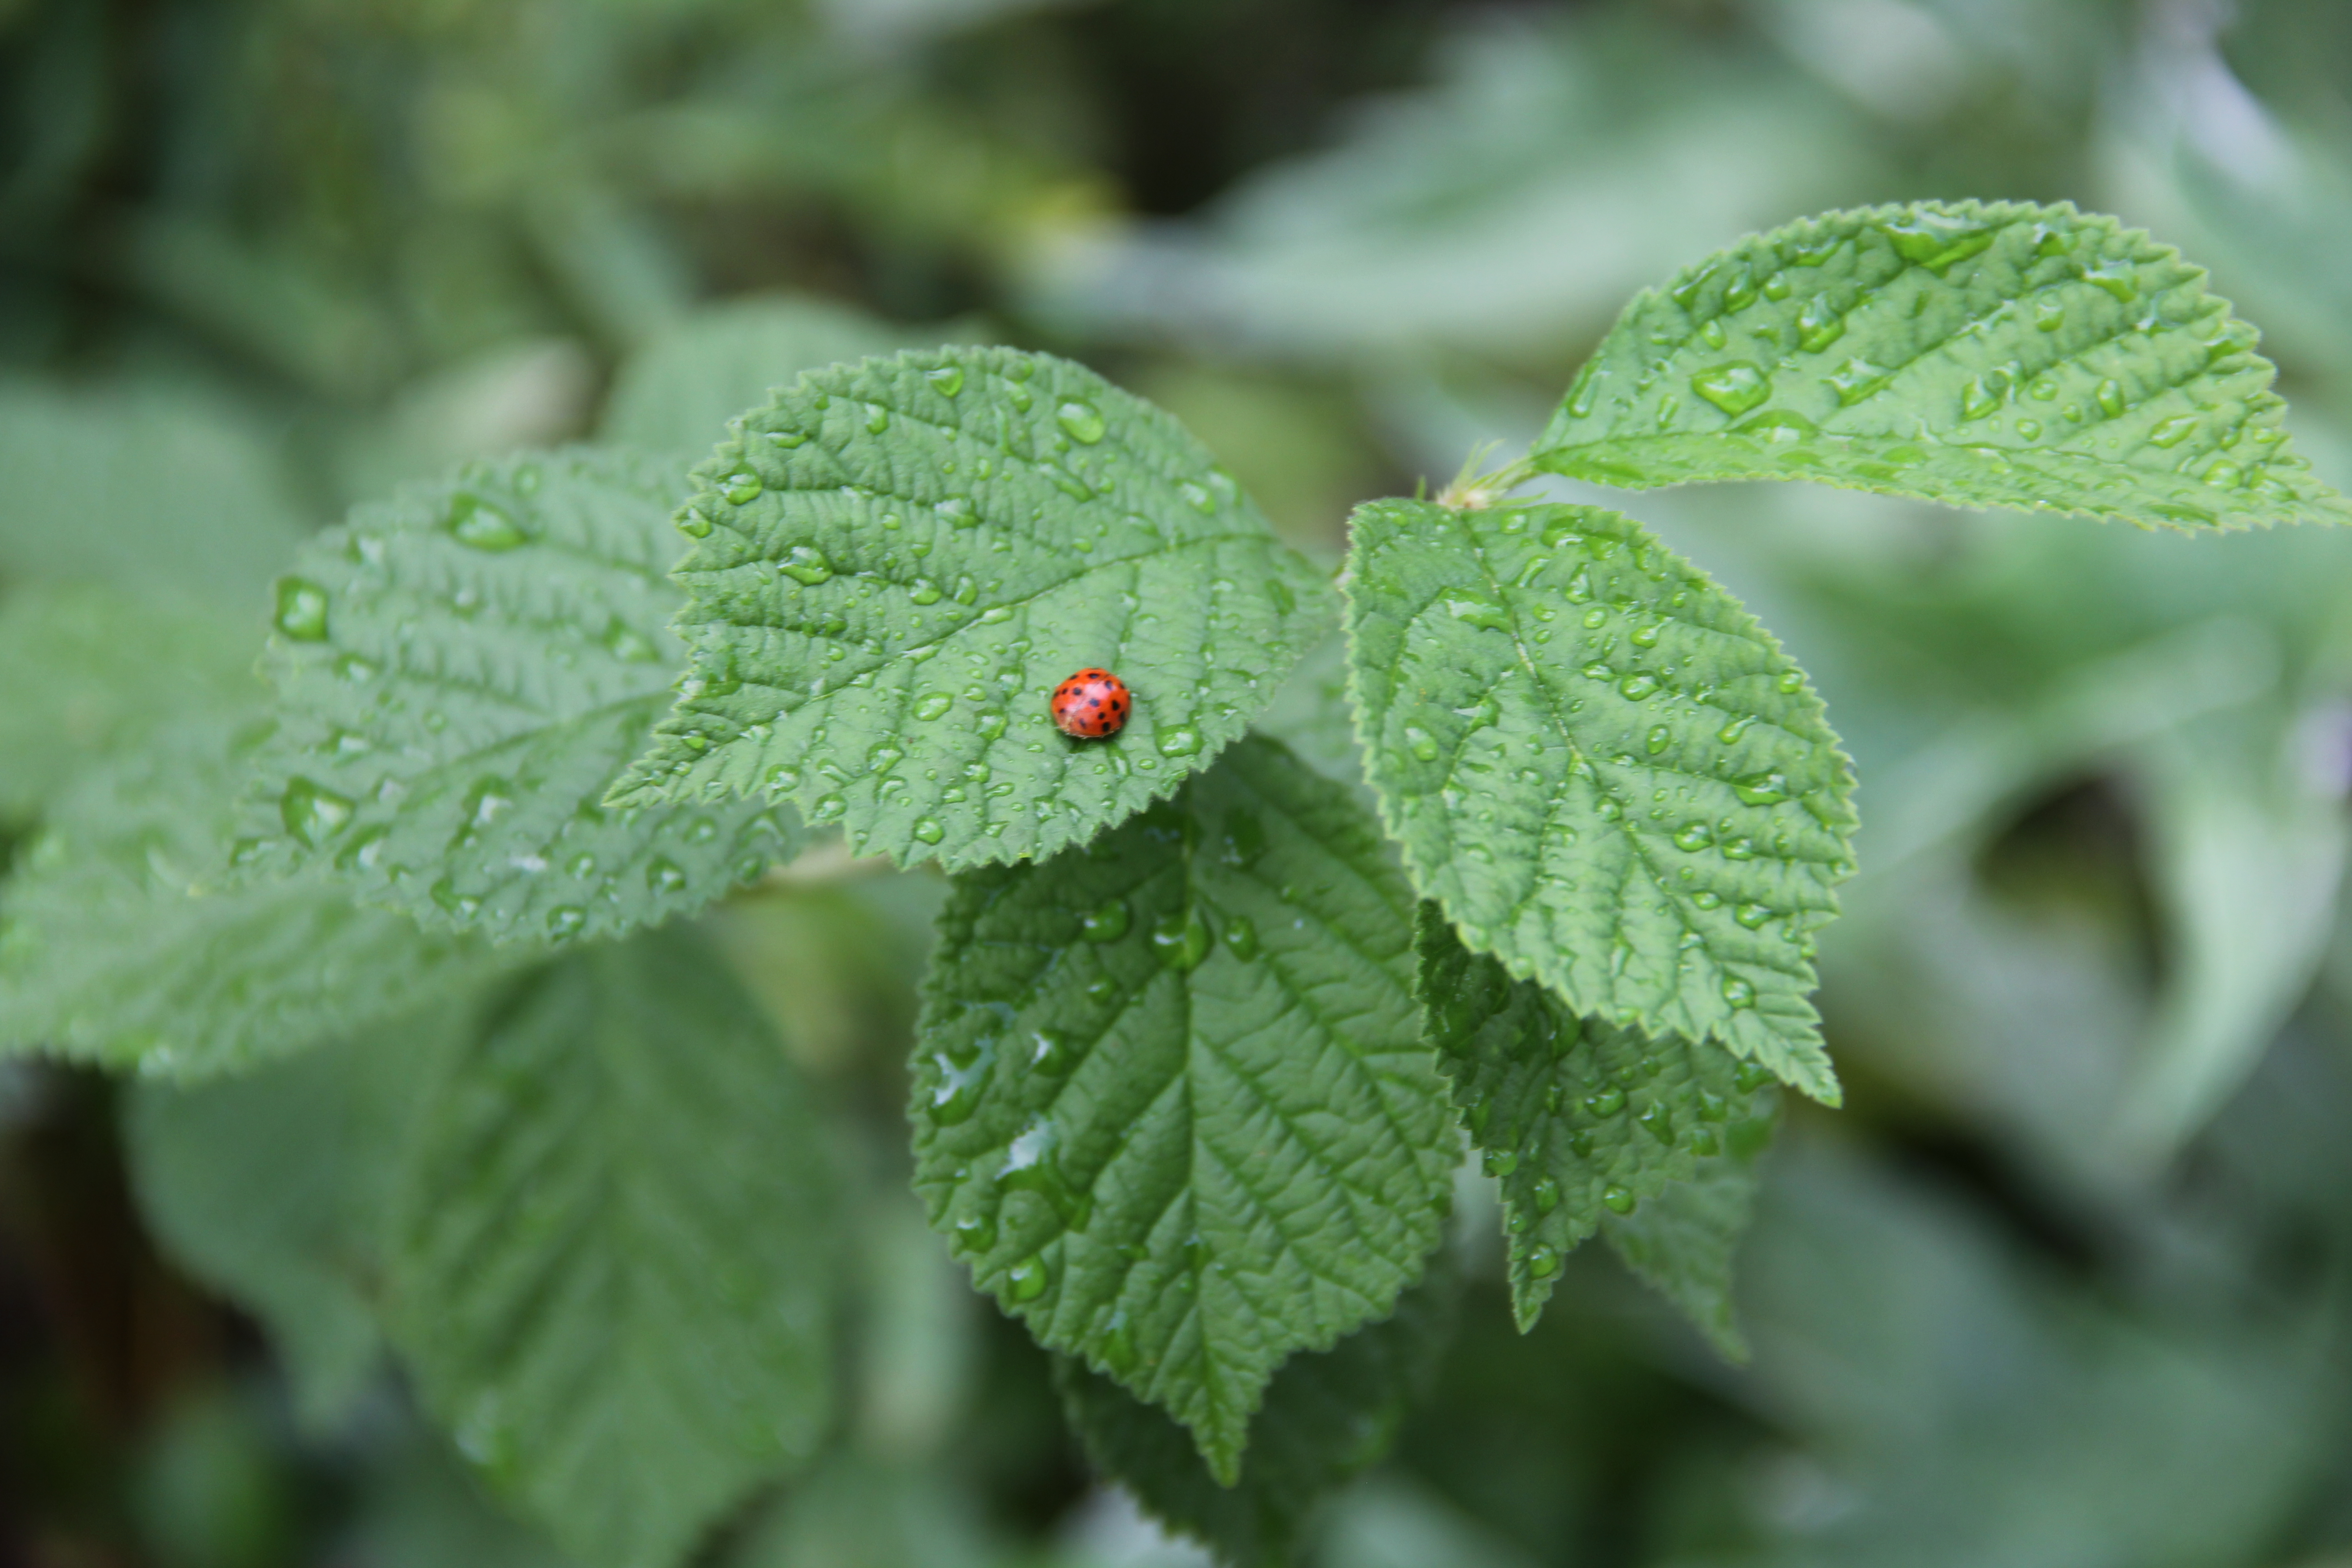 Some Insects Are Helpful In The Garden. Ladybugs Prey On Aphids Which Are A  Species